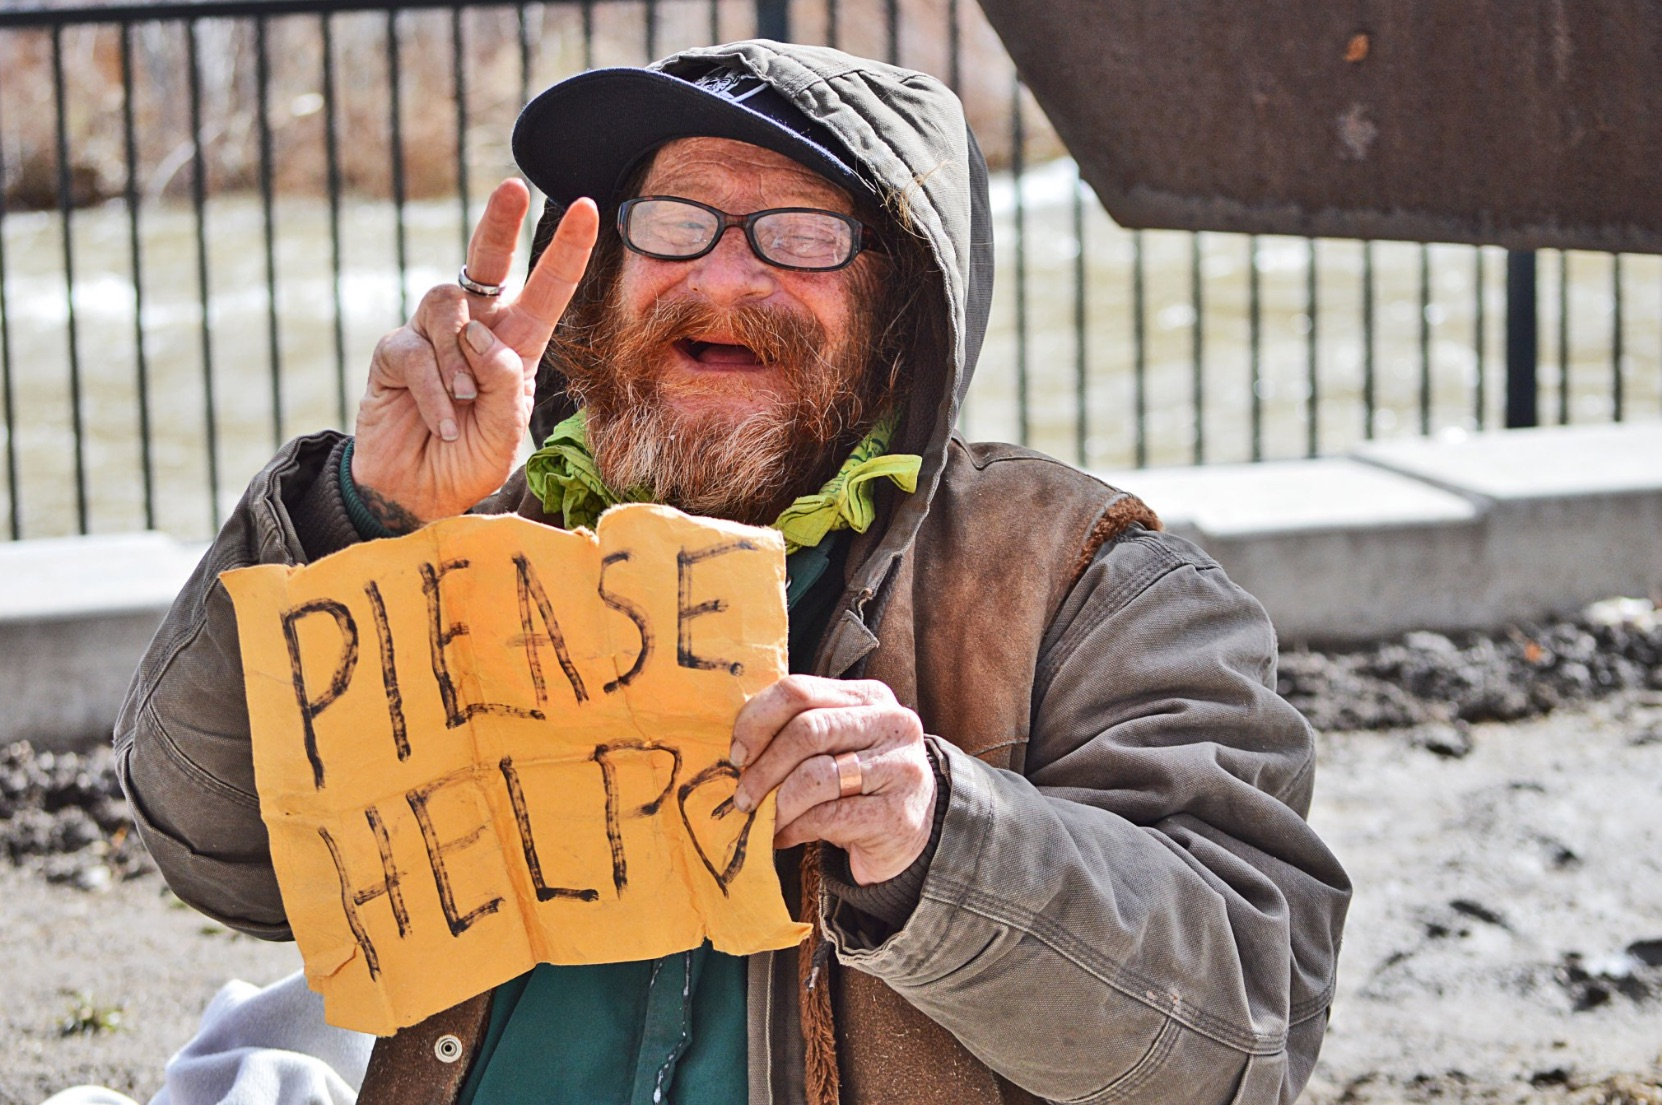 Hobo had an even wider smile as the Truckee River flowed behind him. Photo by Janay Hagans.